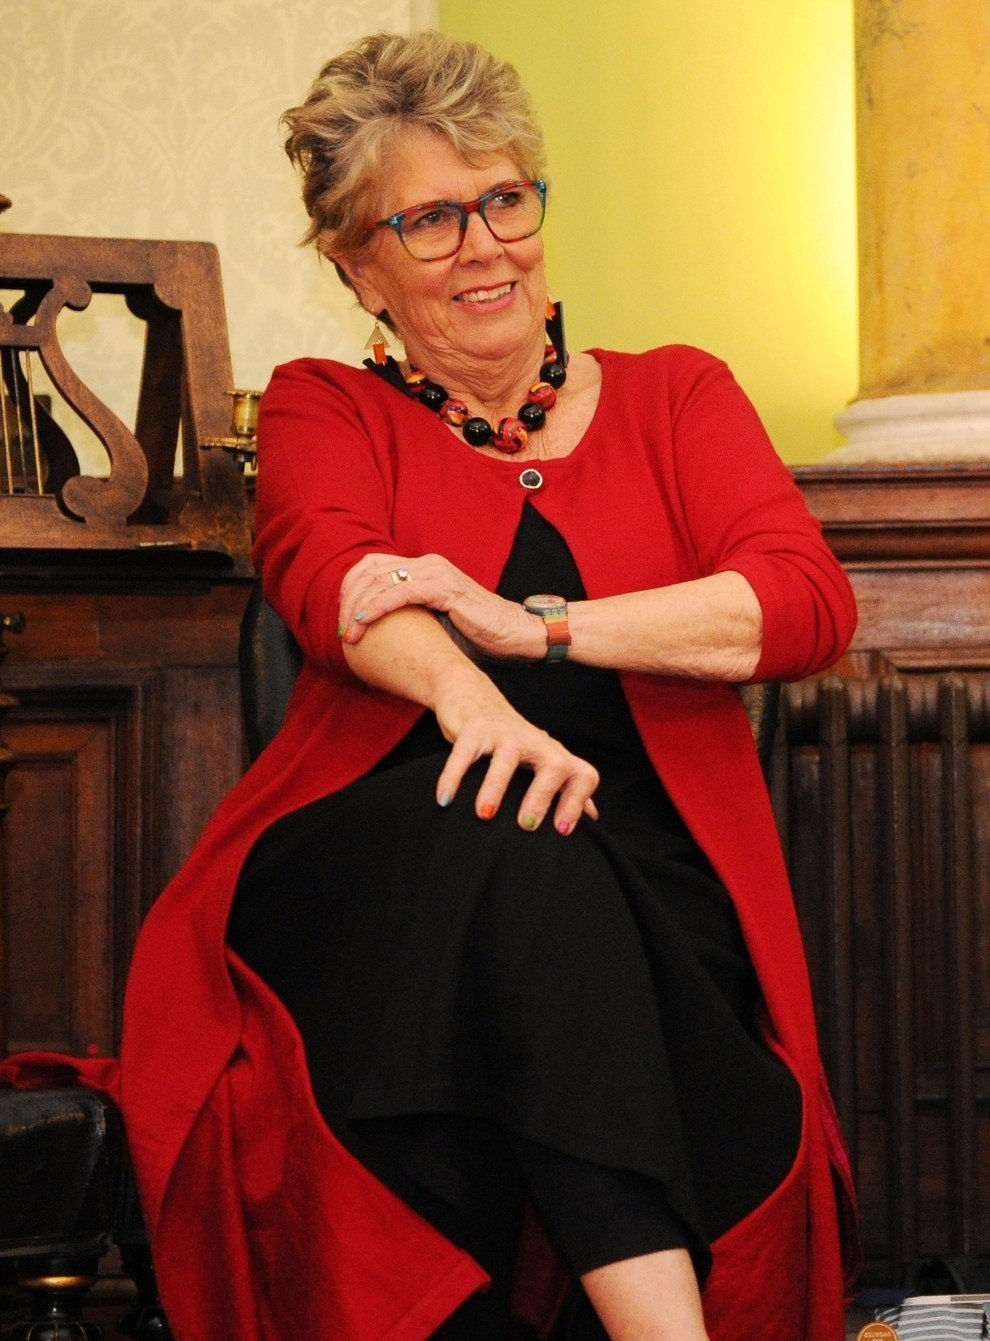 VVYZ4CJDOBE6BBKEKVOQYZF6MI 26 Things You Didn't Know About Bake Off's Prue Leith